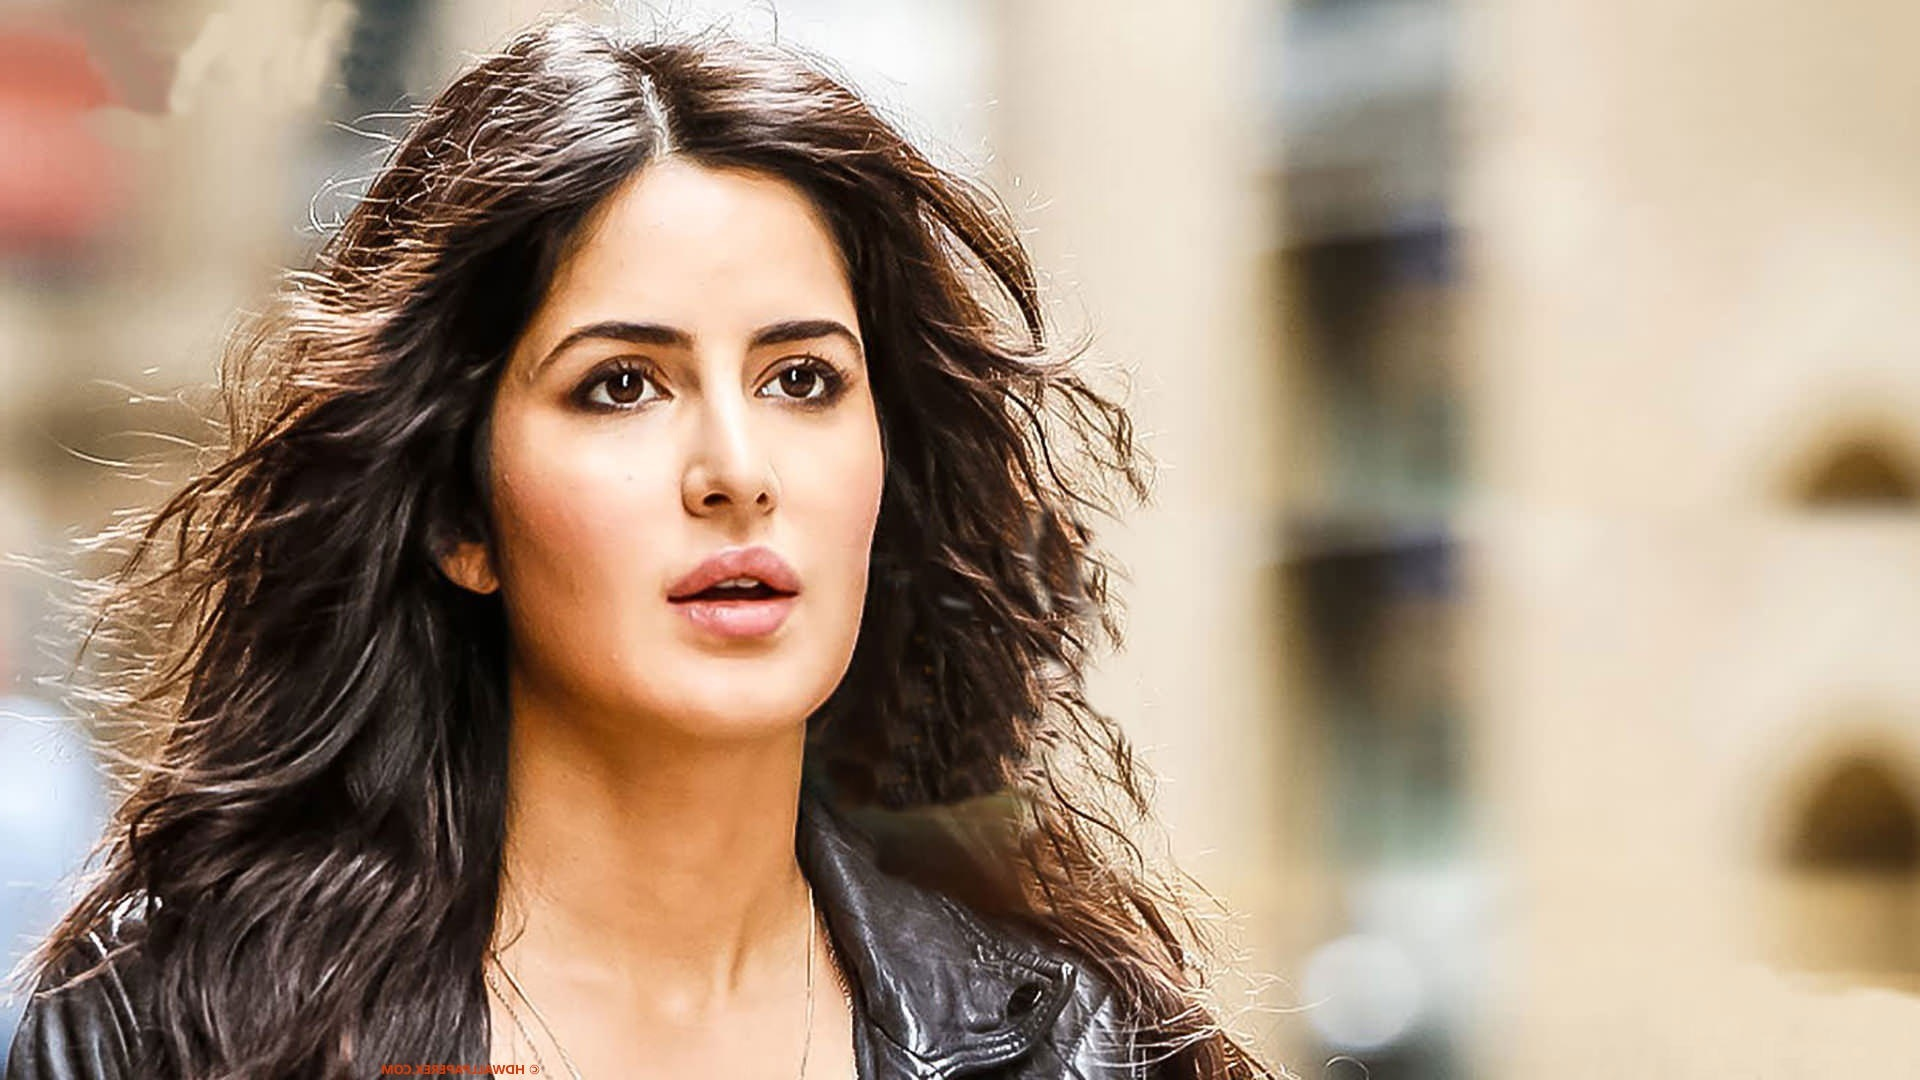 bollywood actress katrina kaif in phantom movie hd wallpaper | hd